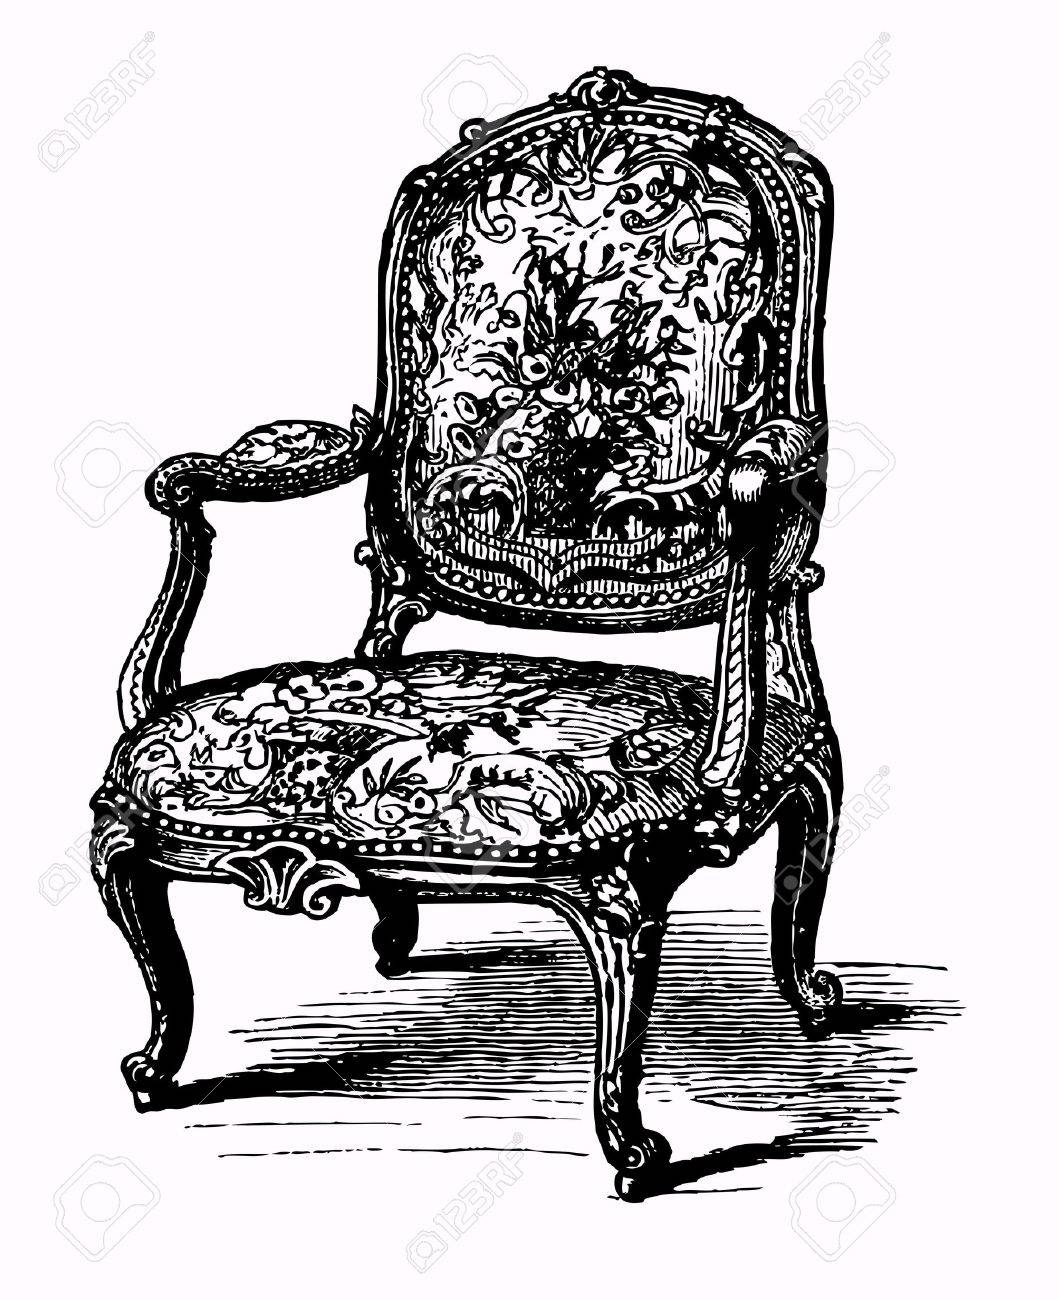 Antique chair drawing - Antique Armchair Stock Vector 10185080